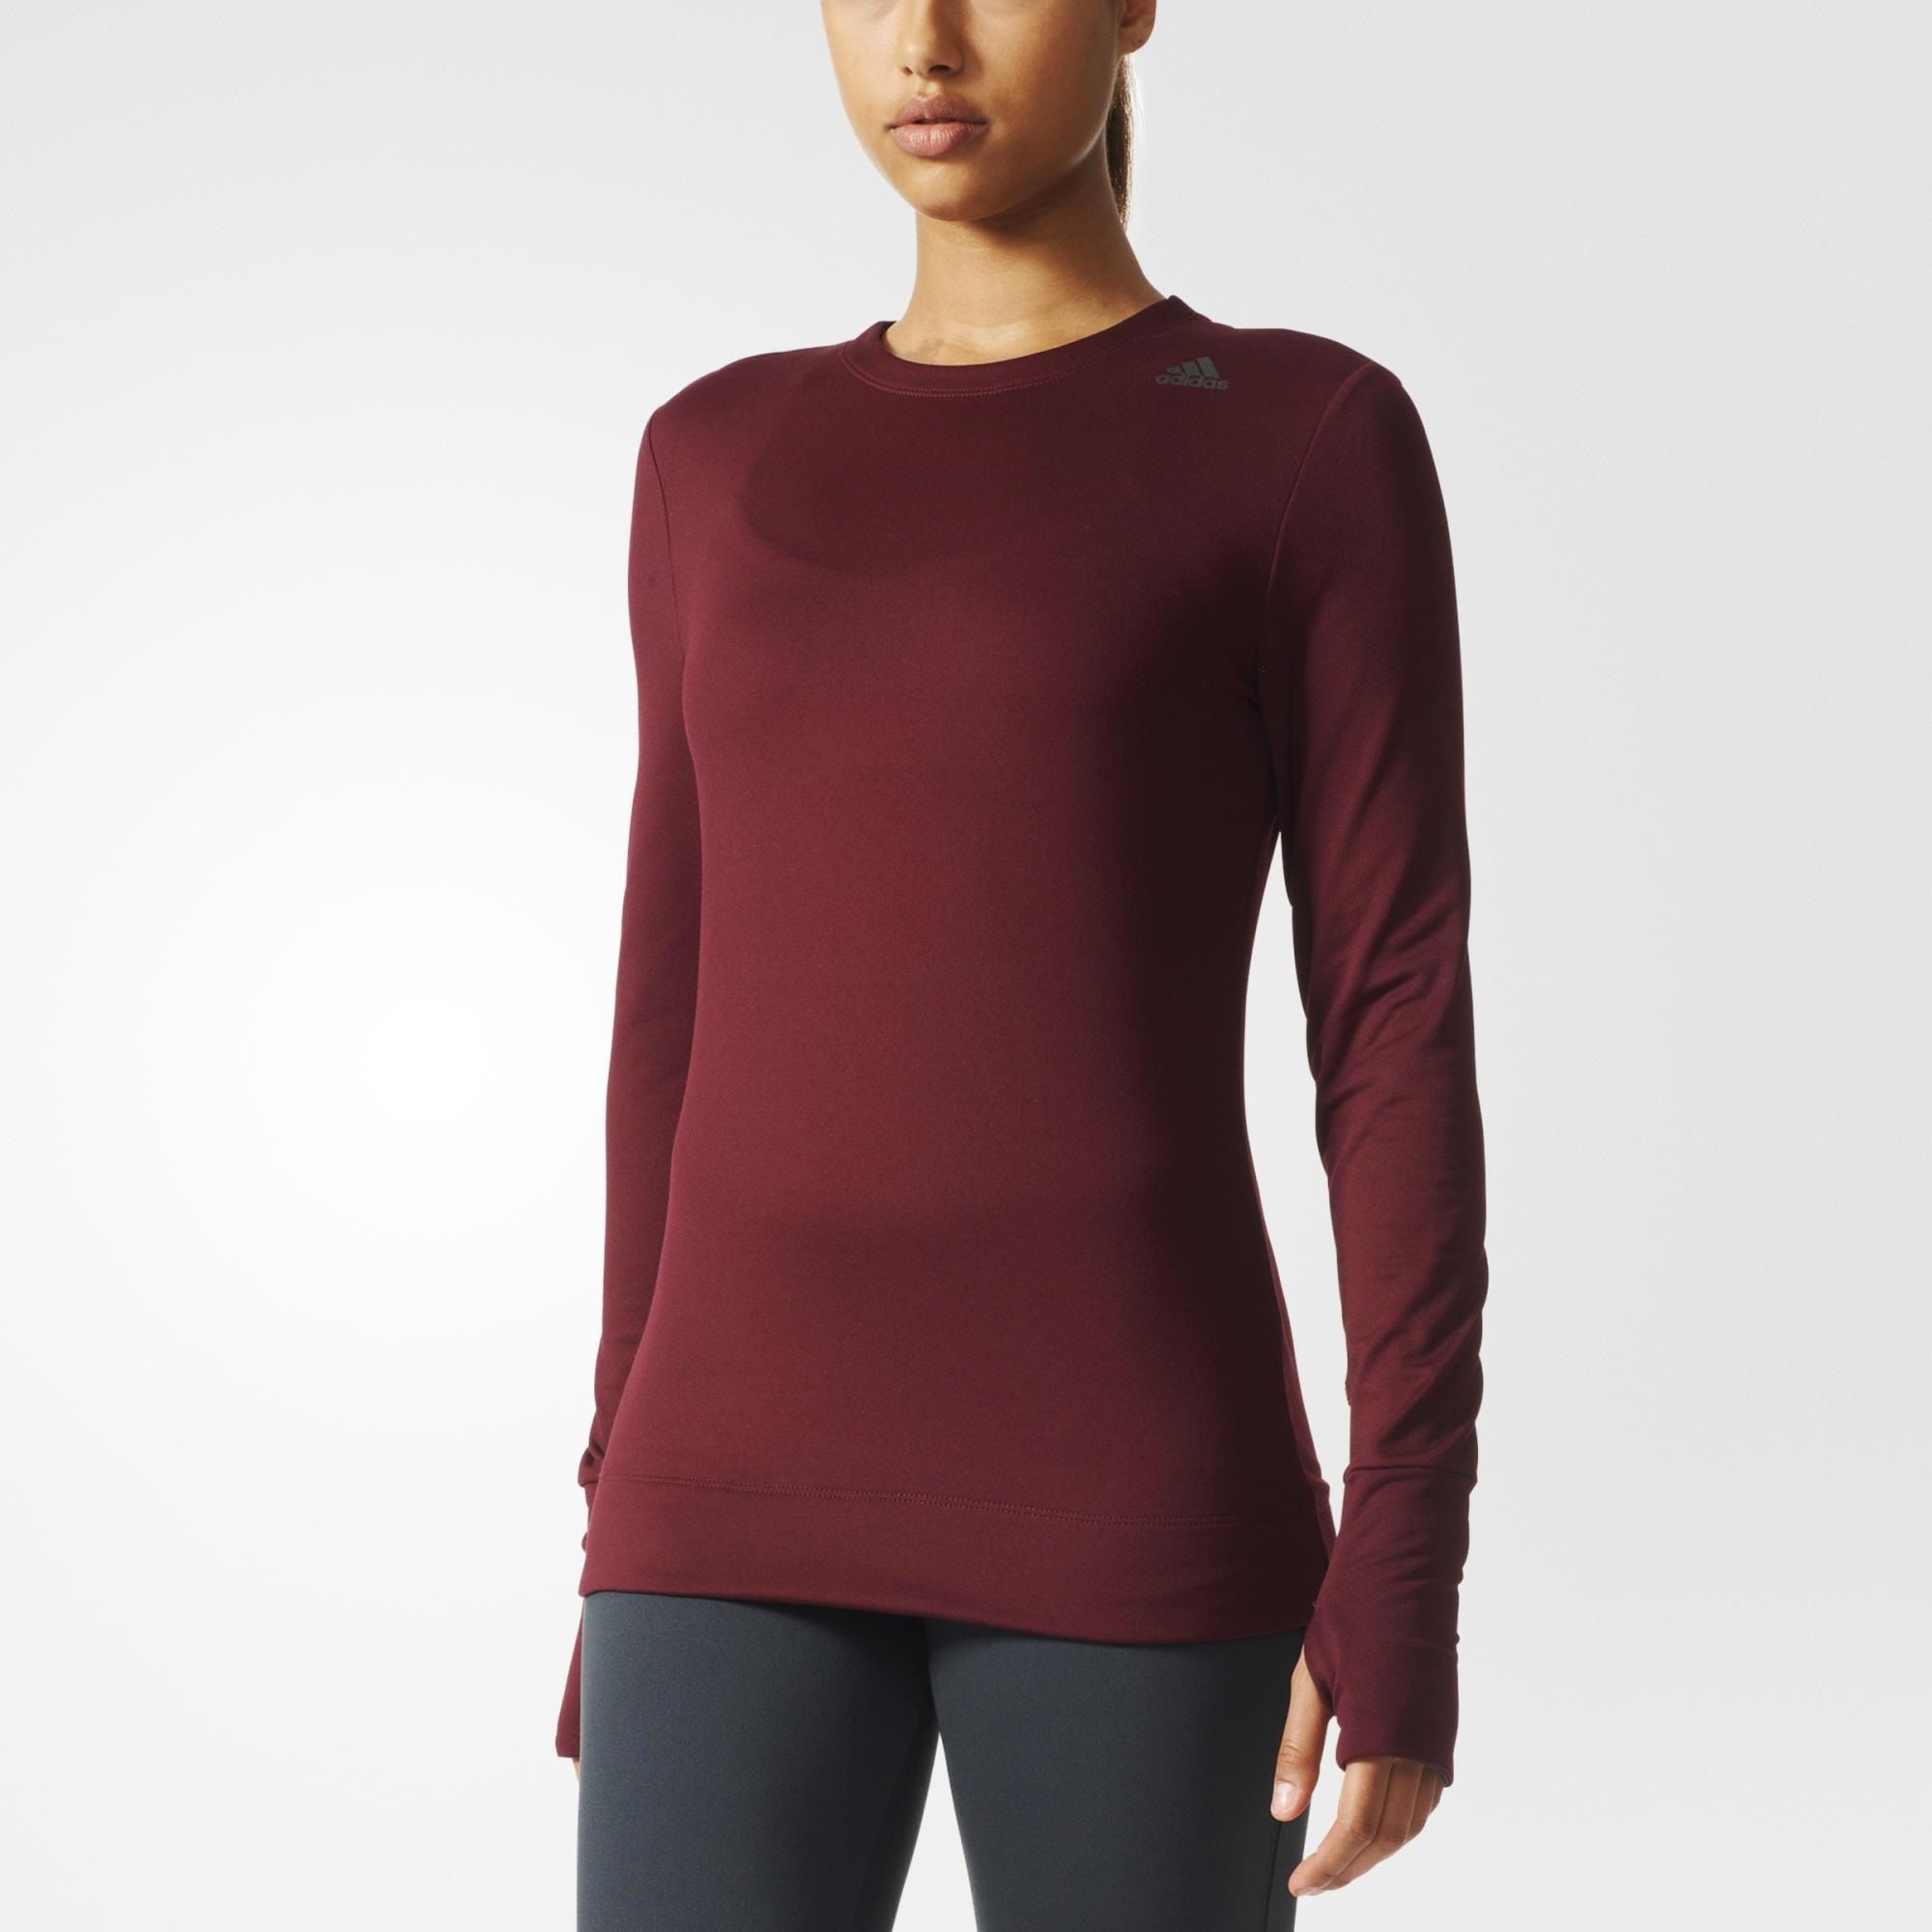 Women Red Shirts Climaheat